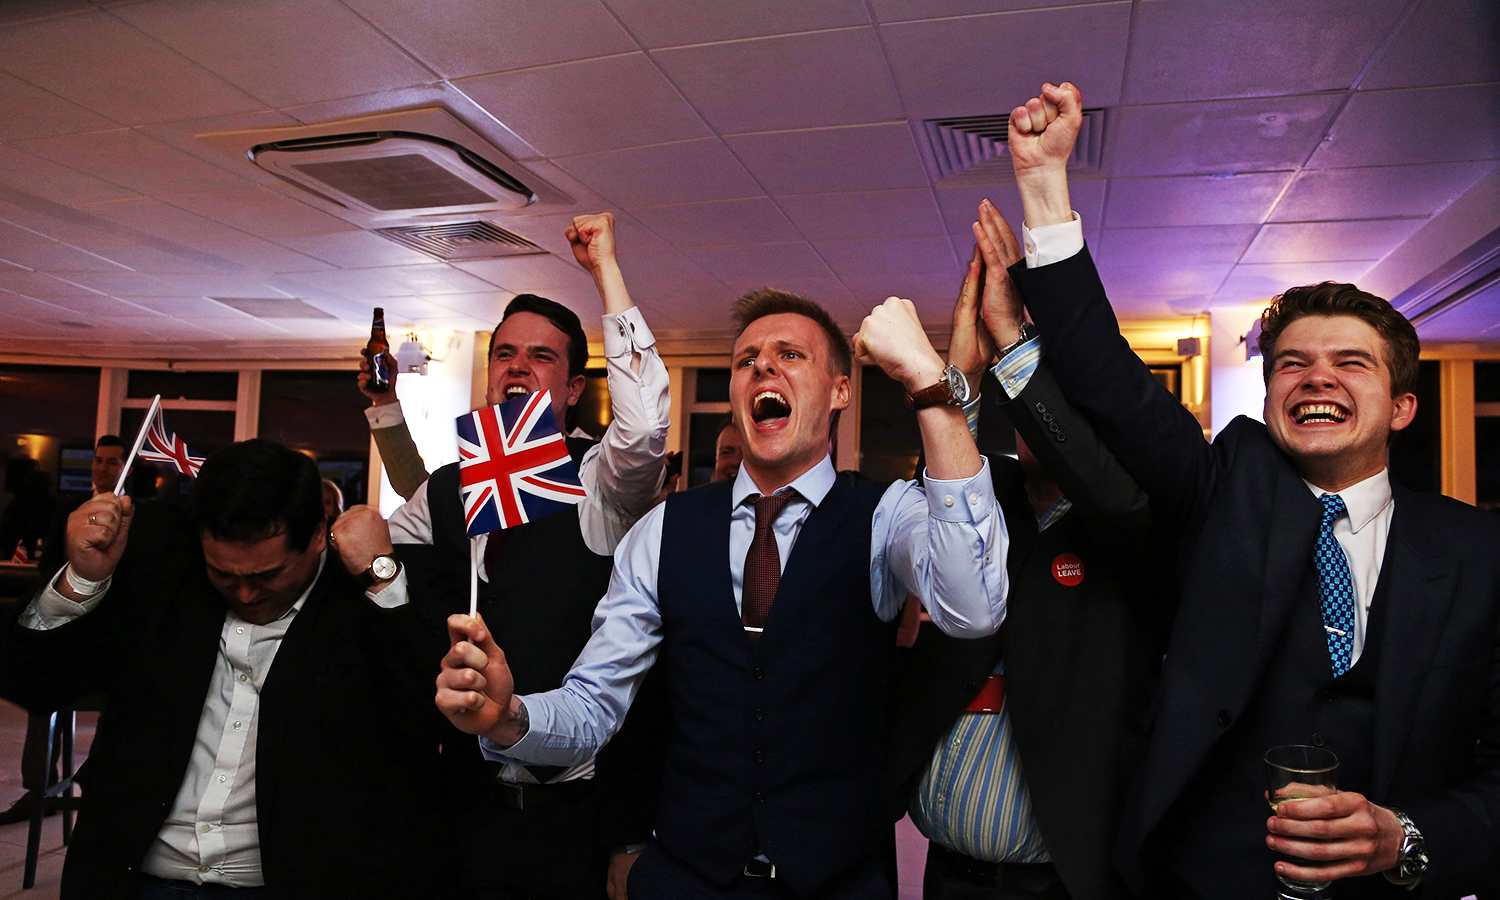 Leave.EU supporters wave Union flags and cheer as the results come in at the Leave.EU referendum party at Millbank Tower in central London early in the morning of June 24, 2016. First results from Britain's knife-edge referendum showed unexpectedly strong support for leaving the European Union on Friday, sending the pound plummeting as investors feared a historic blow against the 28-nation alliance. / AFP PHOTO / GEOFF CADDICK